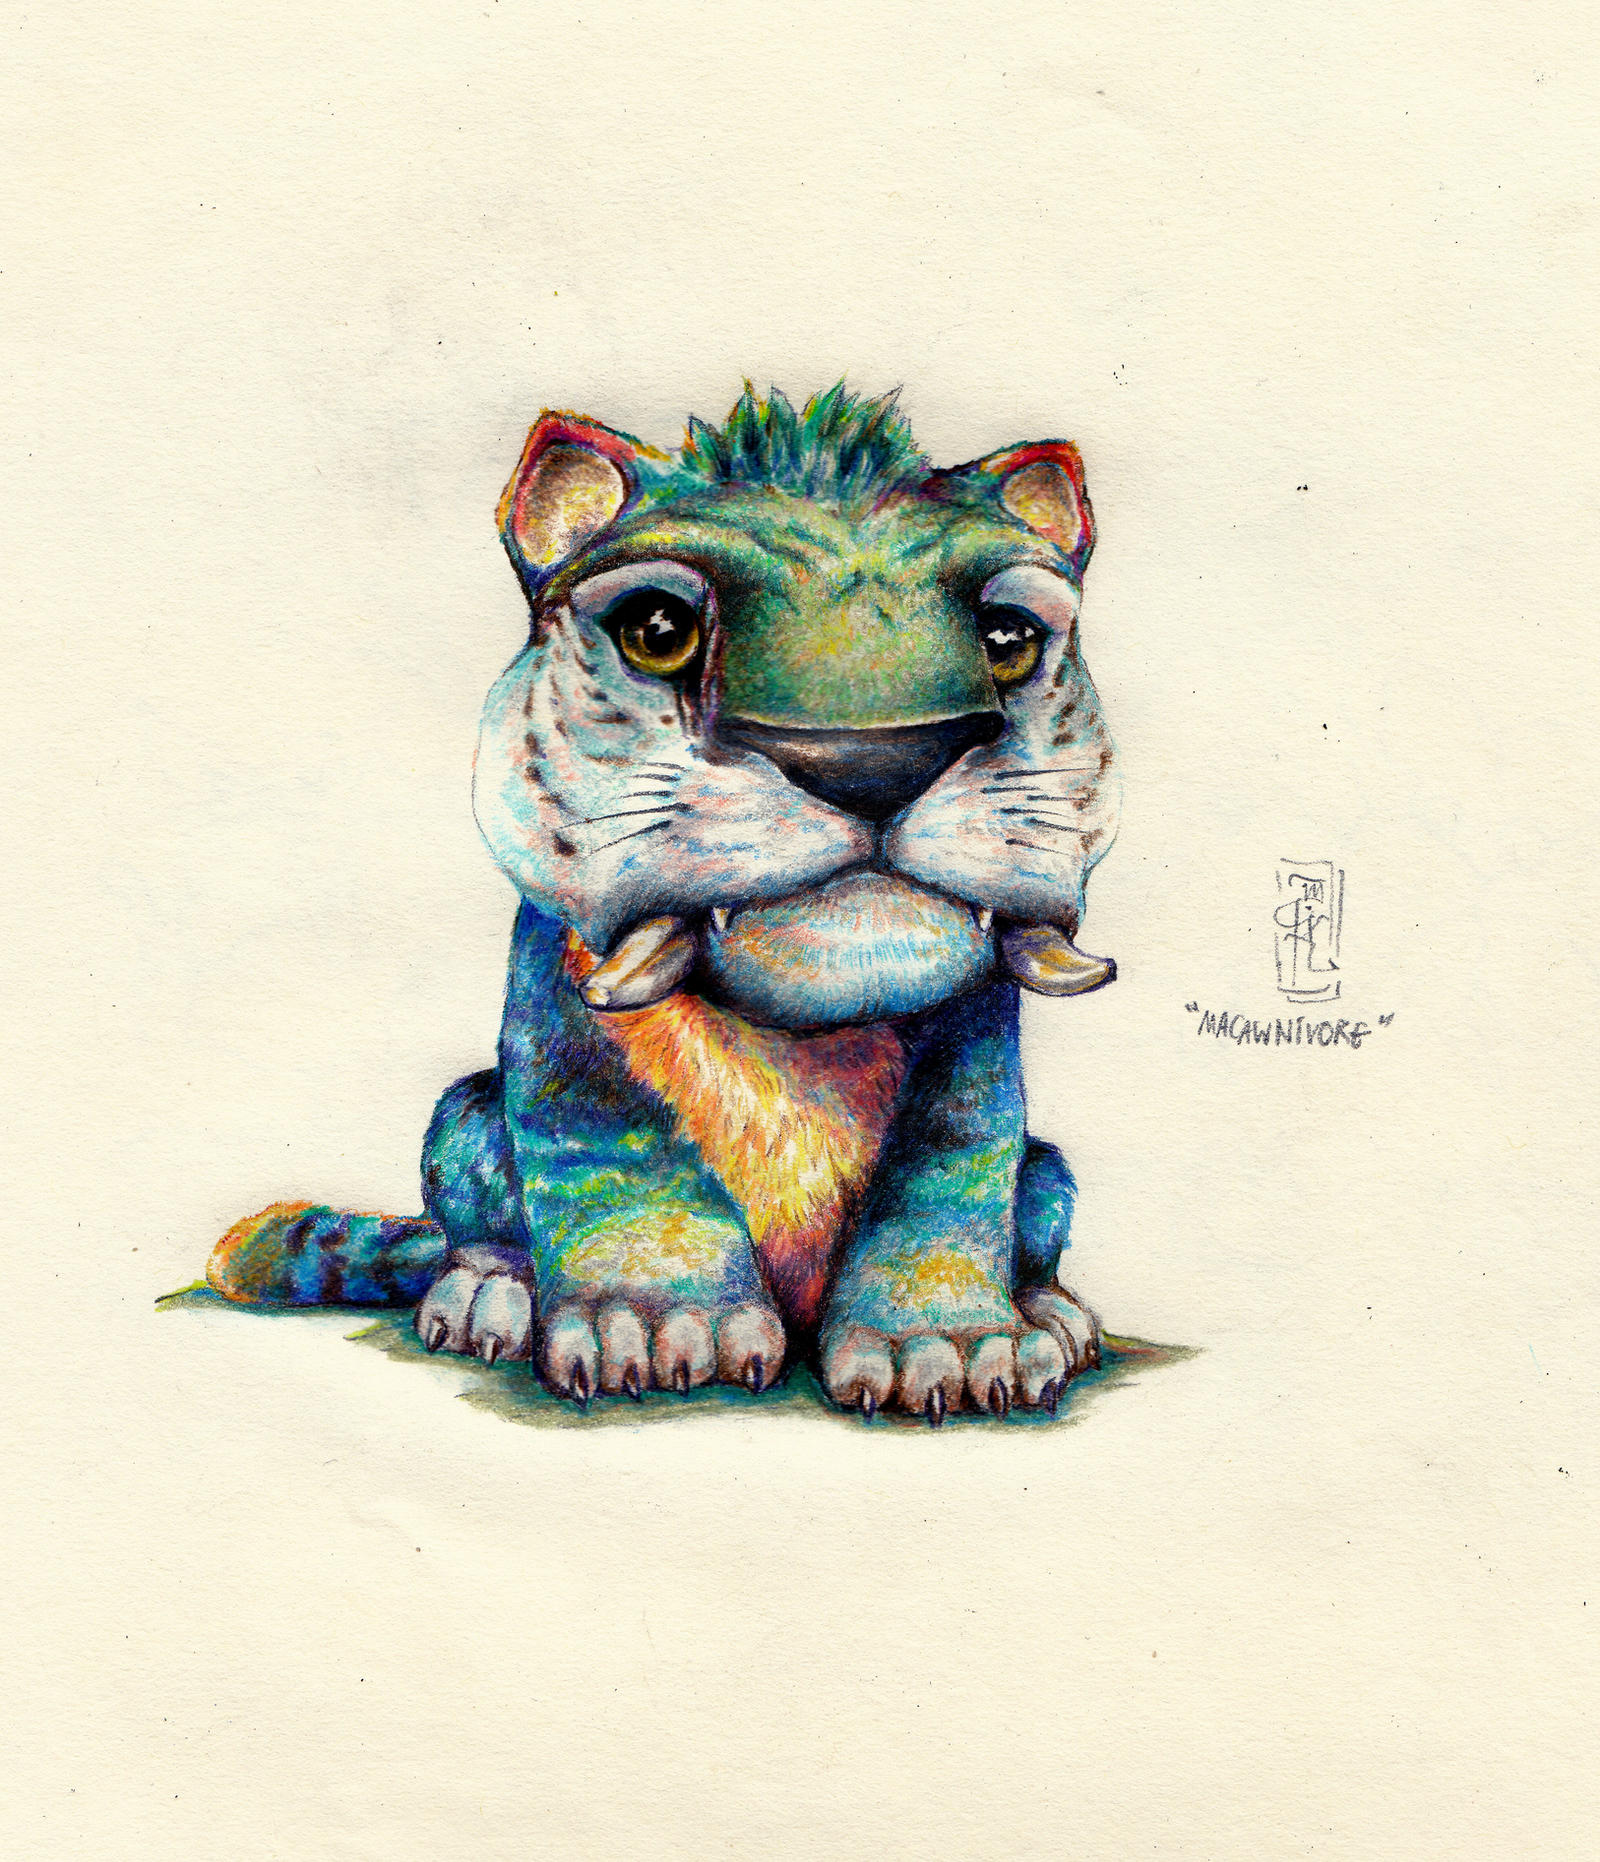 Macawnivore from the croods colored pencil by mikmerfiller on macawnivore from the croods colored pencil by mikmerfiller voltagebd Choice Image